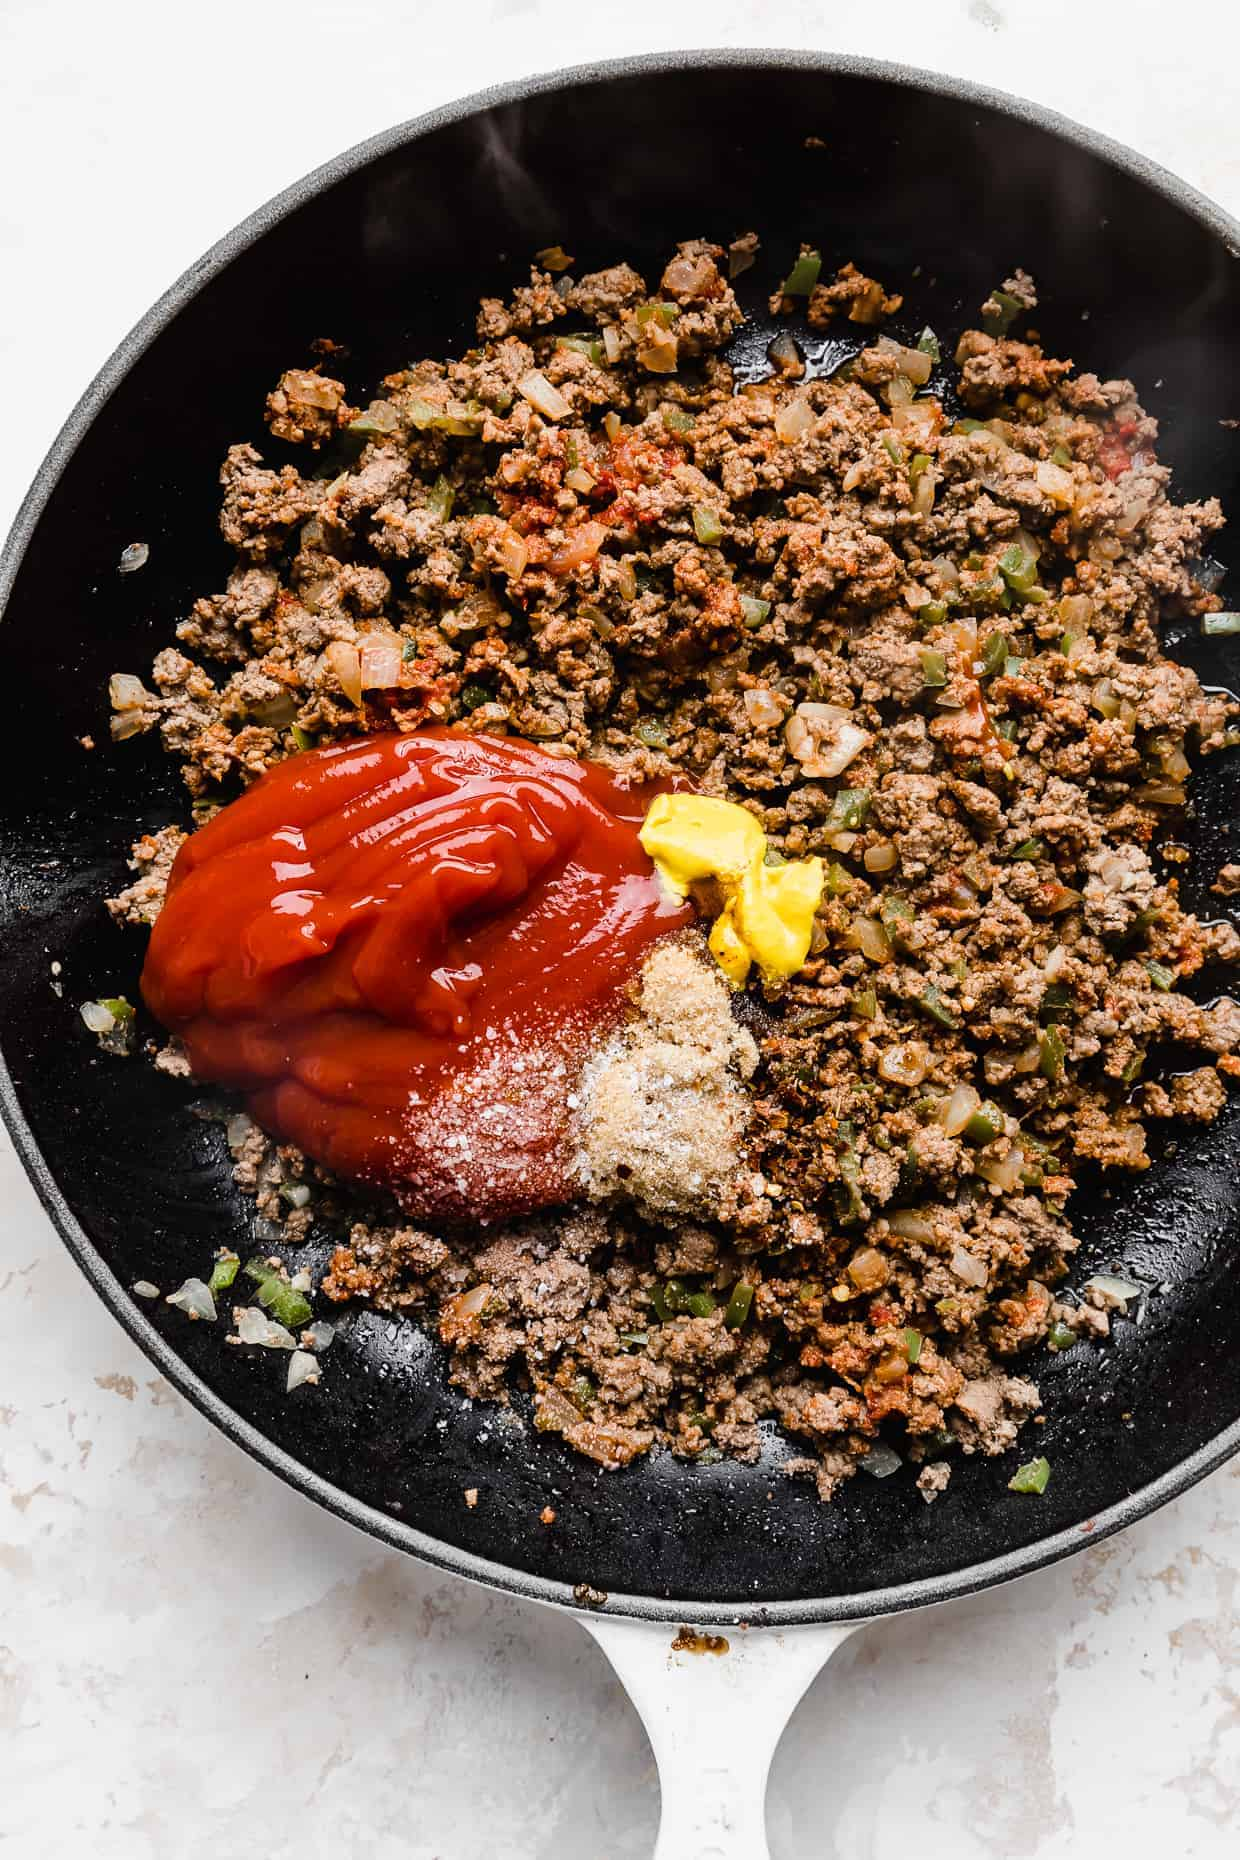 A skillet full of ground beef with ketchup, mayo, salt, and garlic to make sloppy joes.